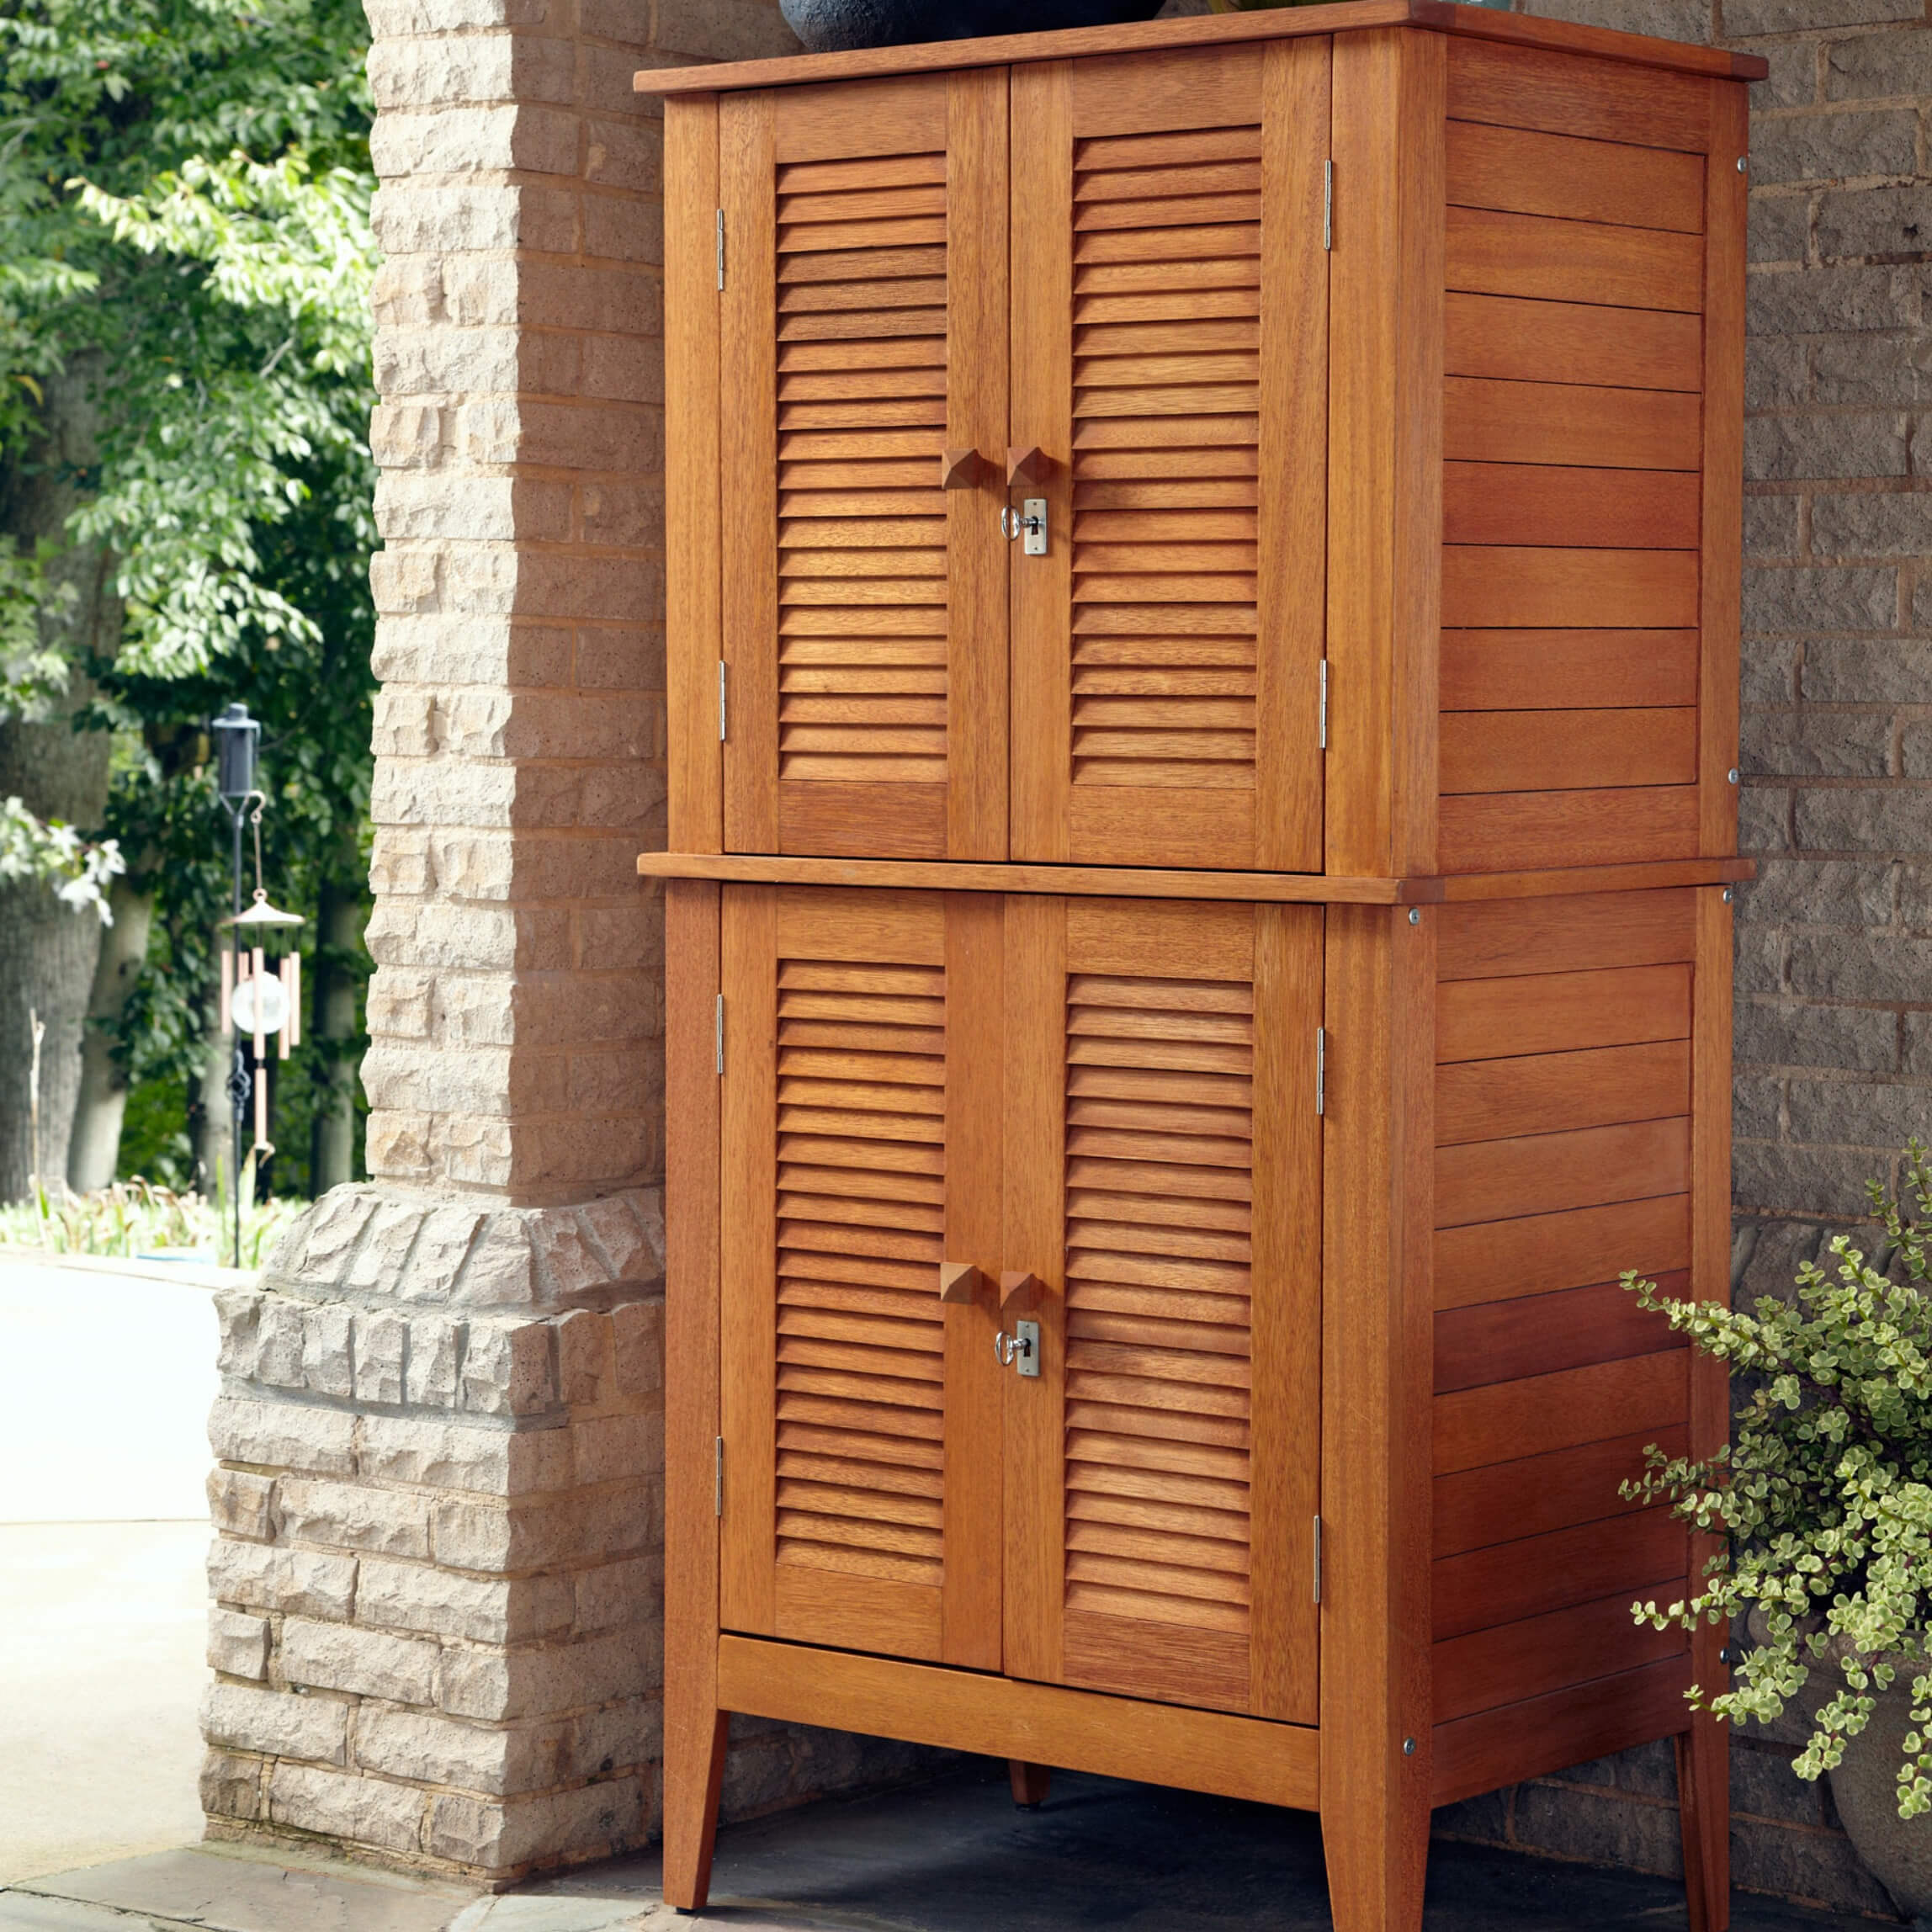 top 10 types of outdoor deck storage boxes. Black Bedroom Furniture Sets. Home Design Ideas